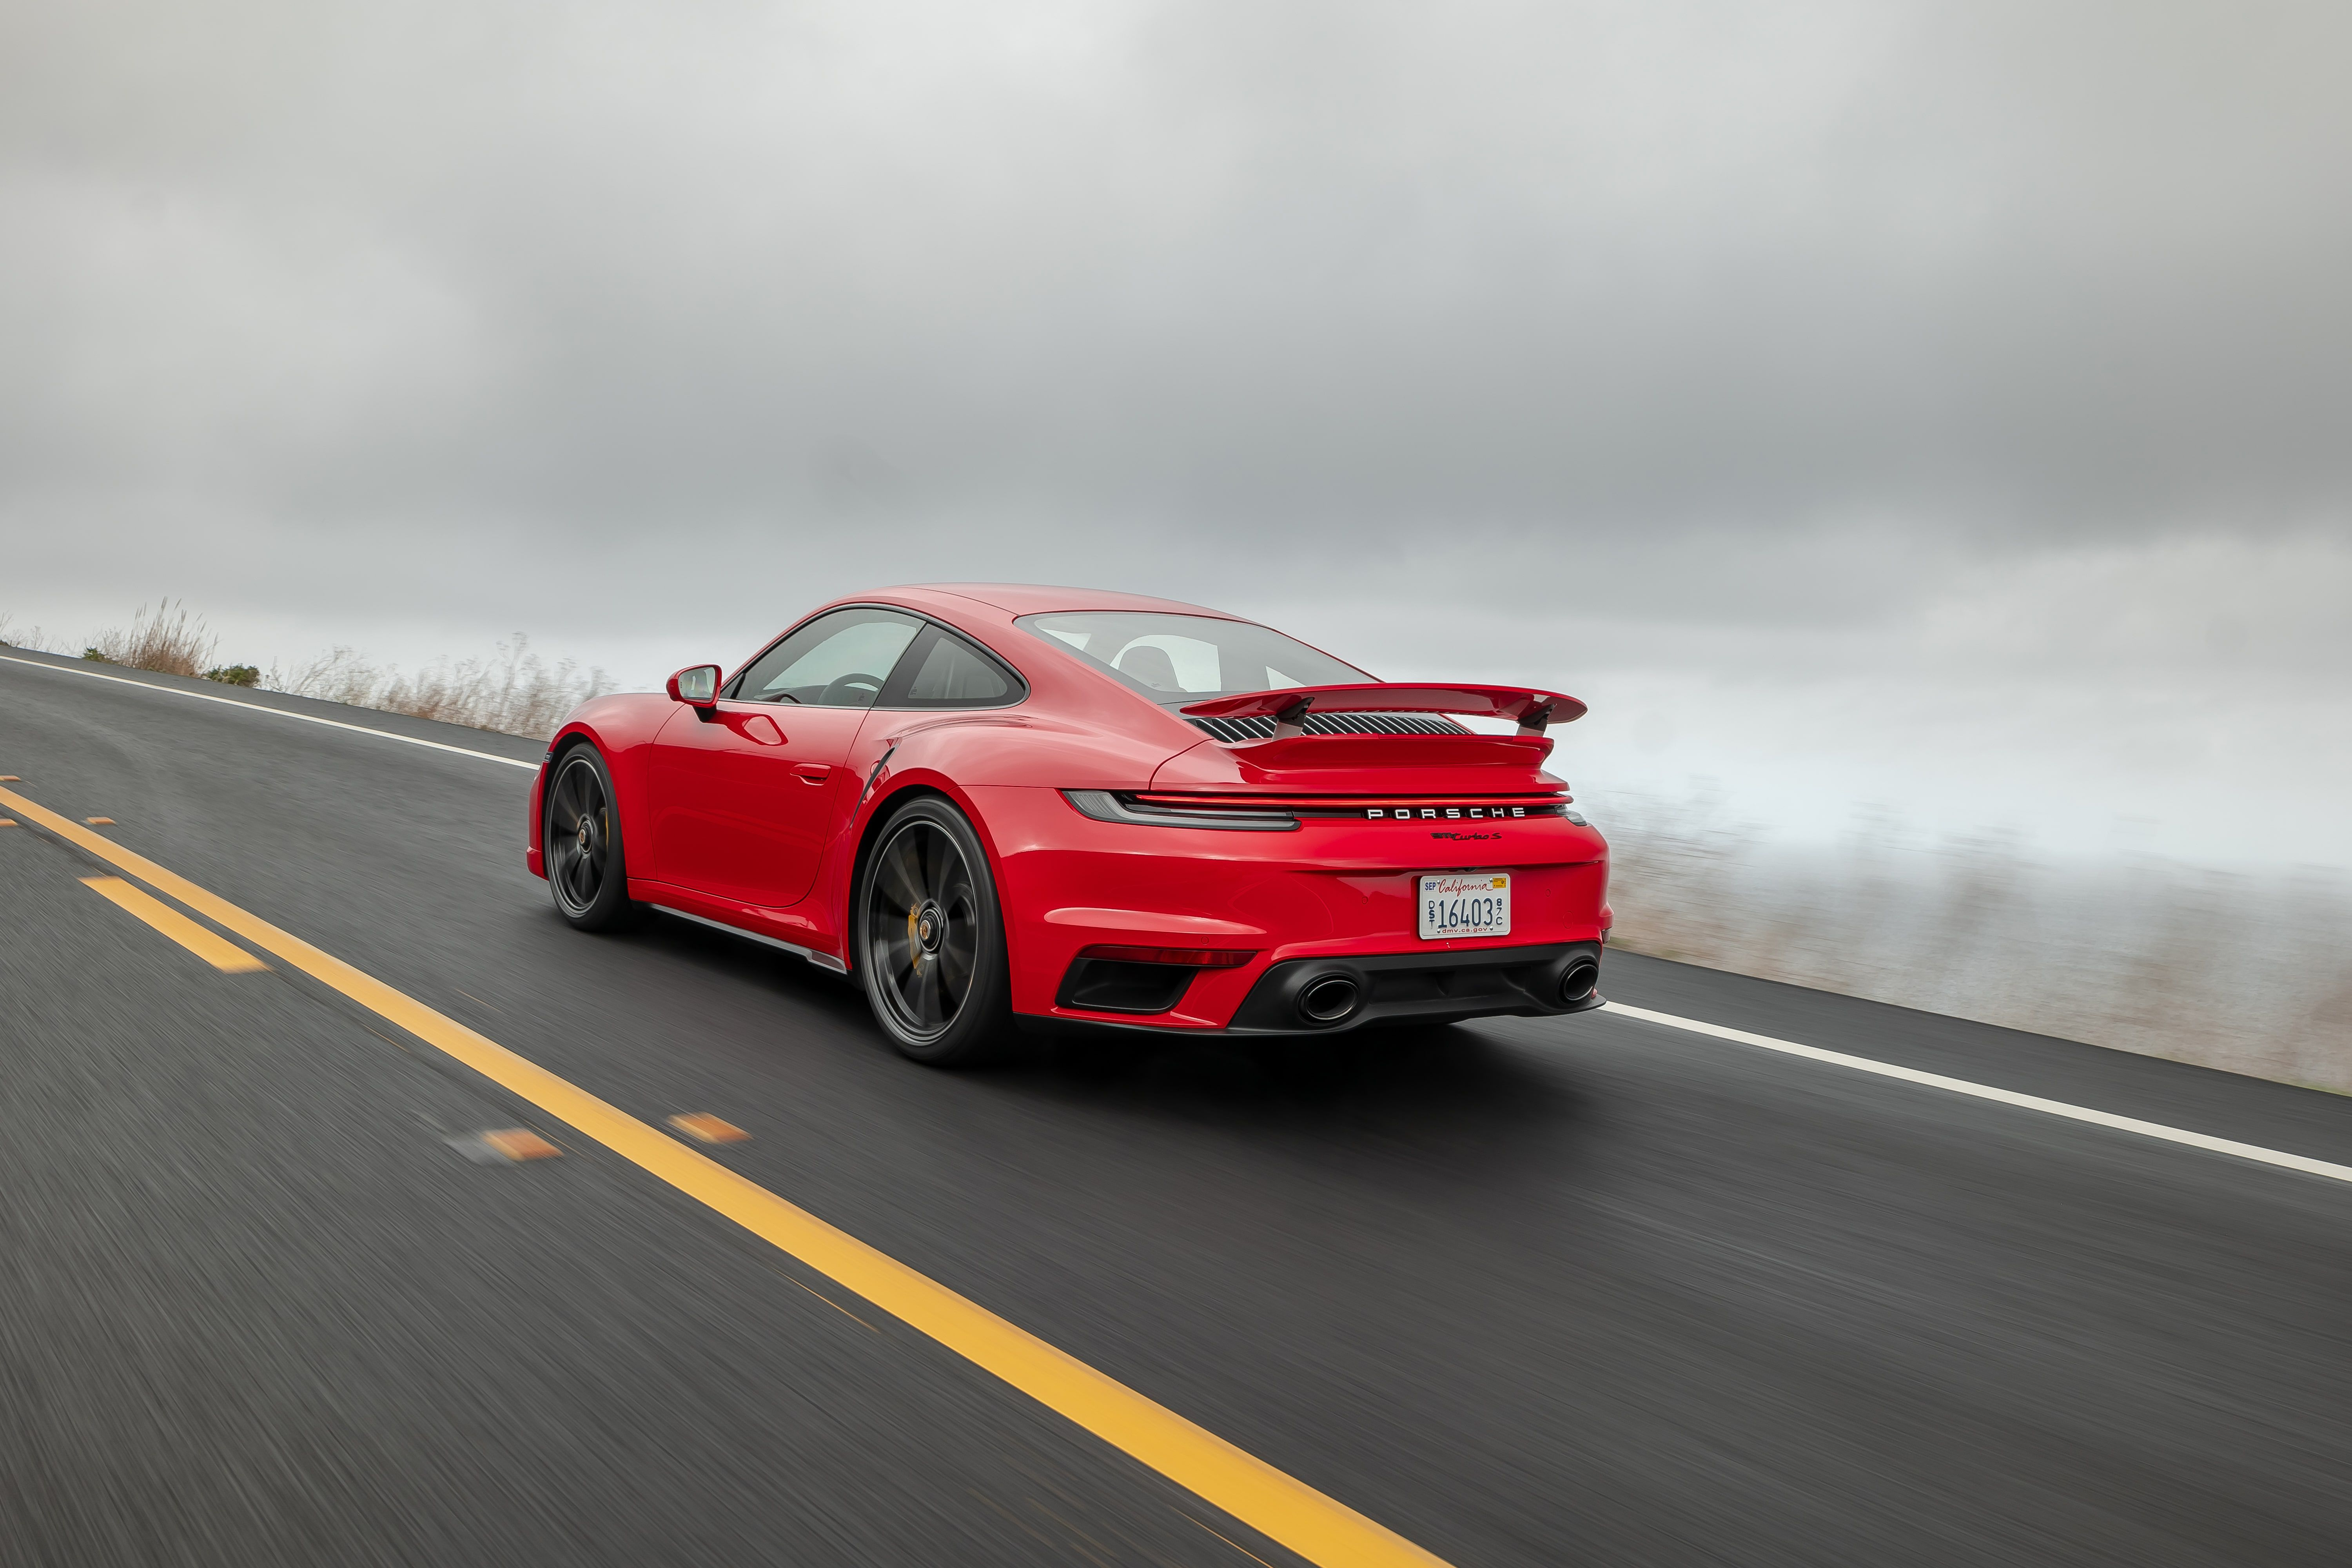 2021 Porsche 911 Turbo S More Power And The Best Handling Ever